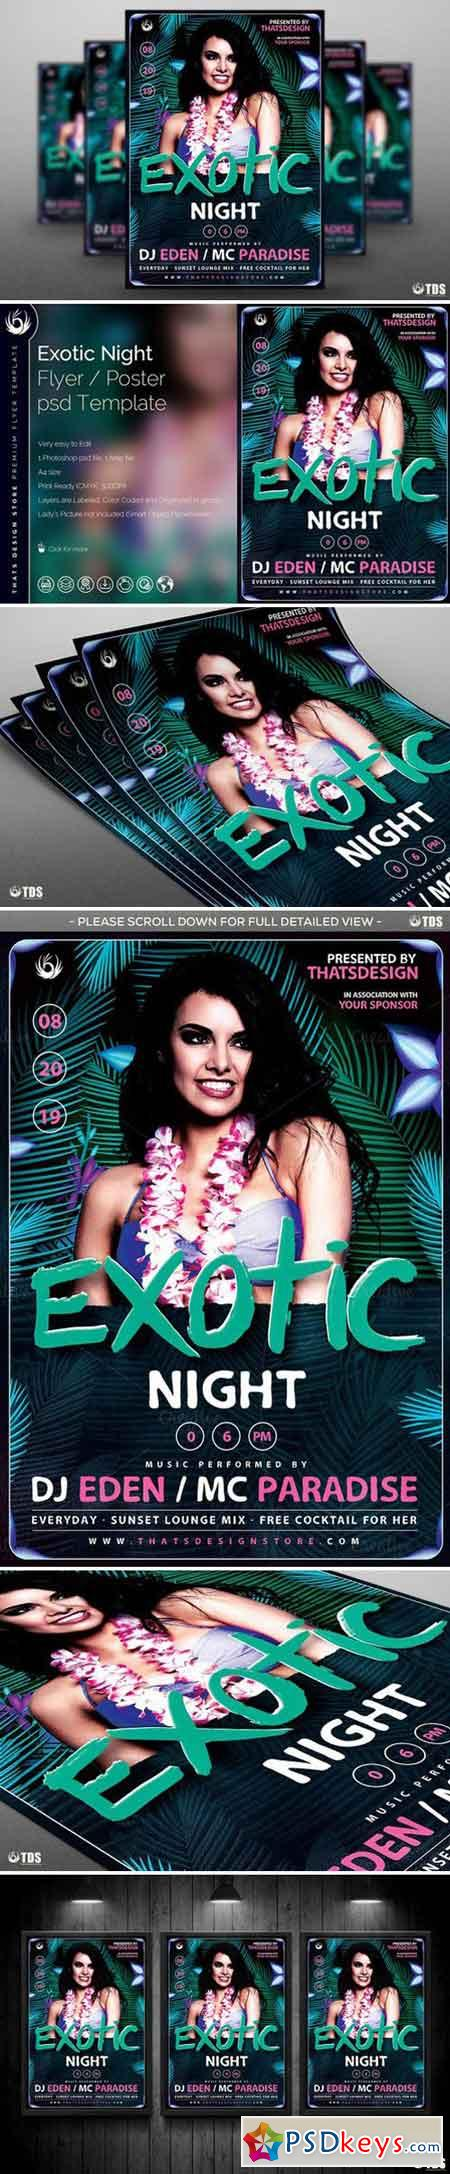 Exotic Night Flyer Template 691261